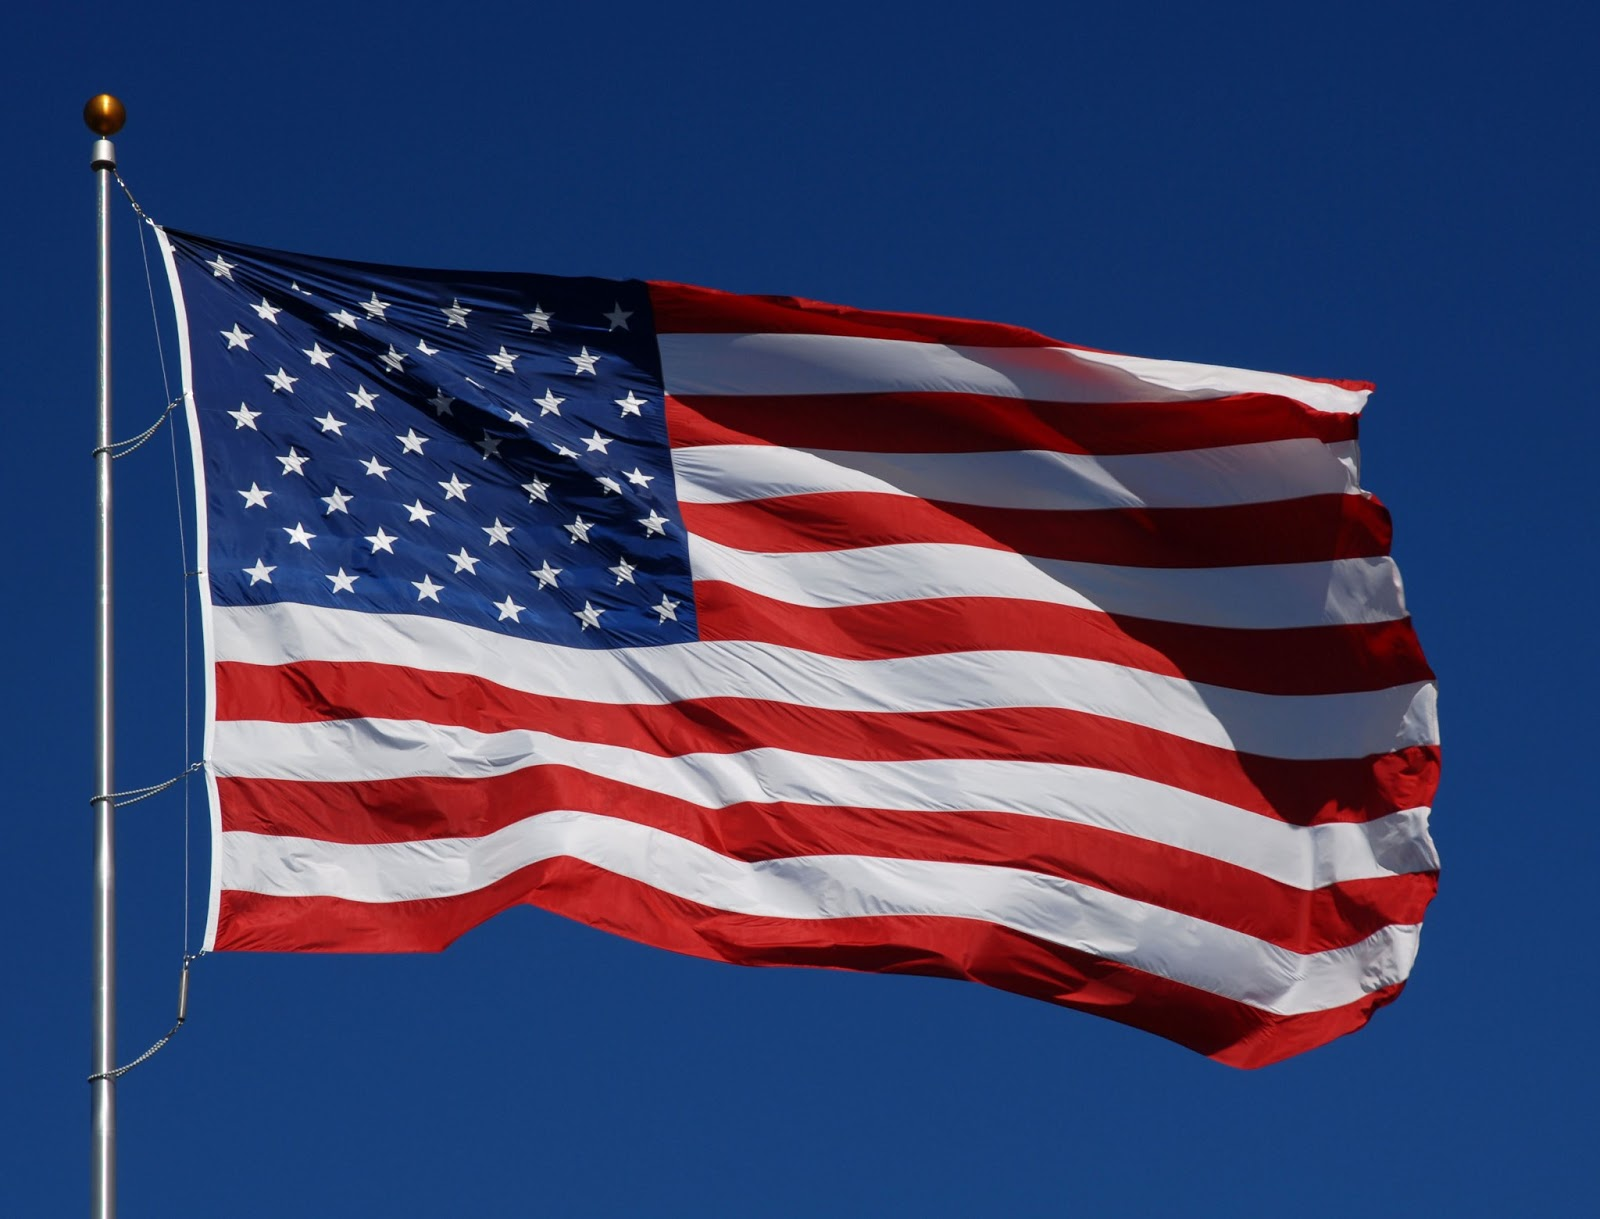 Free Download Wallpaper Hd Usa Flag Hd Wallpapers Free